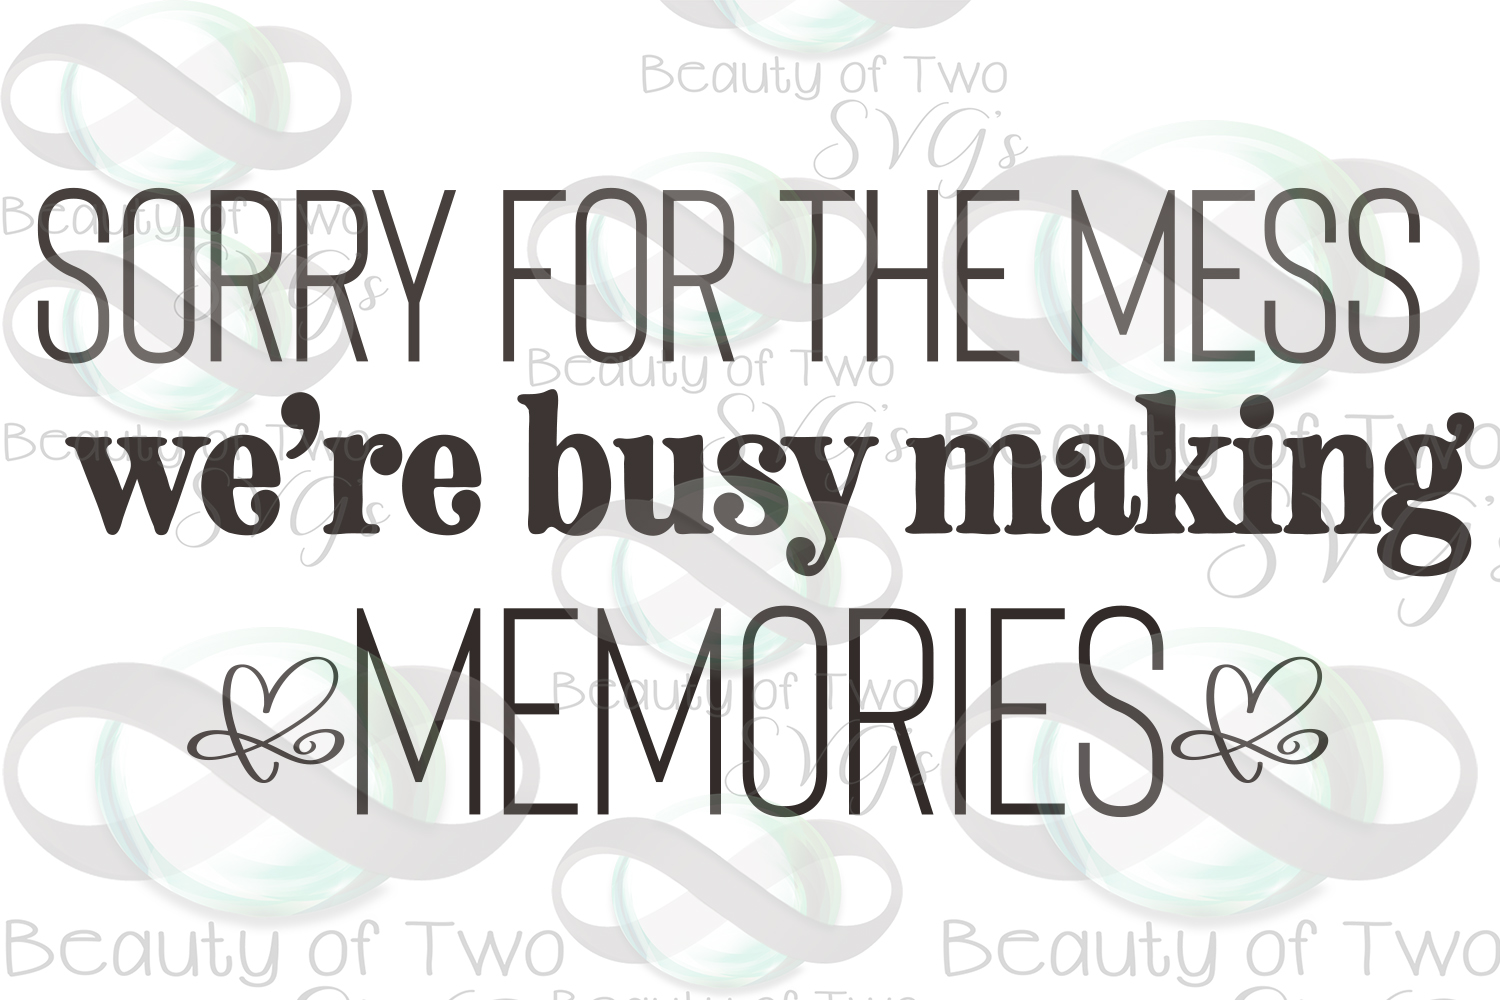 Sorry for the mess sign svg, Making memories svg, family svg example image 3